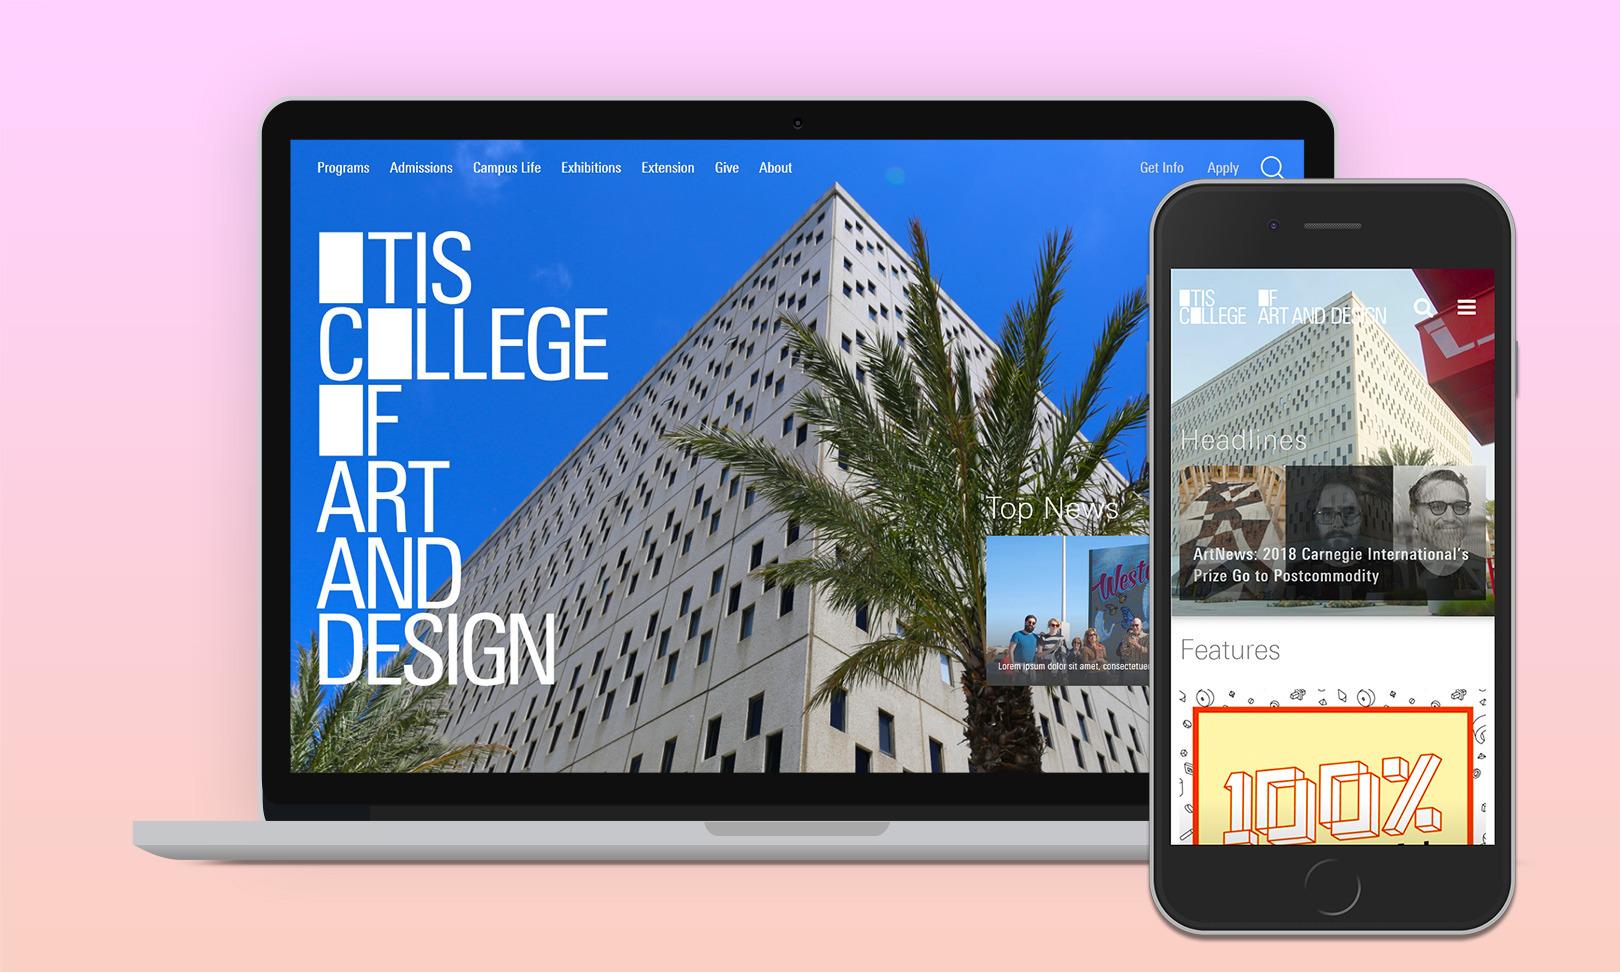 Otis College of Art and Design